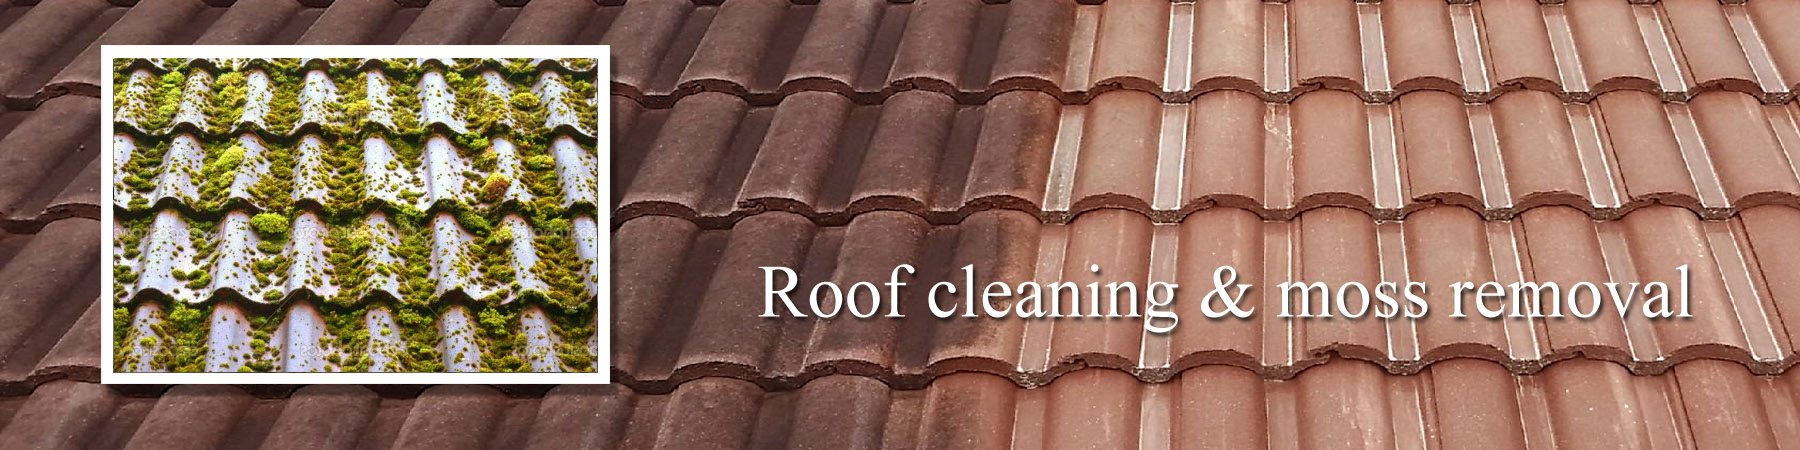 Roof cleaning Peterborough J R Cleaning